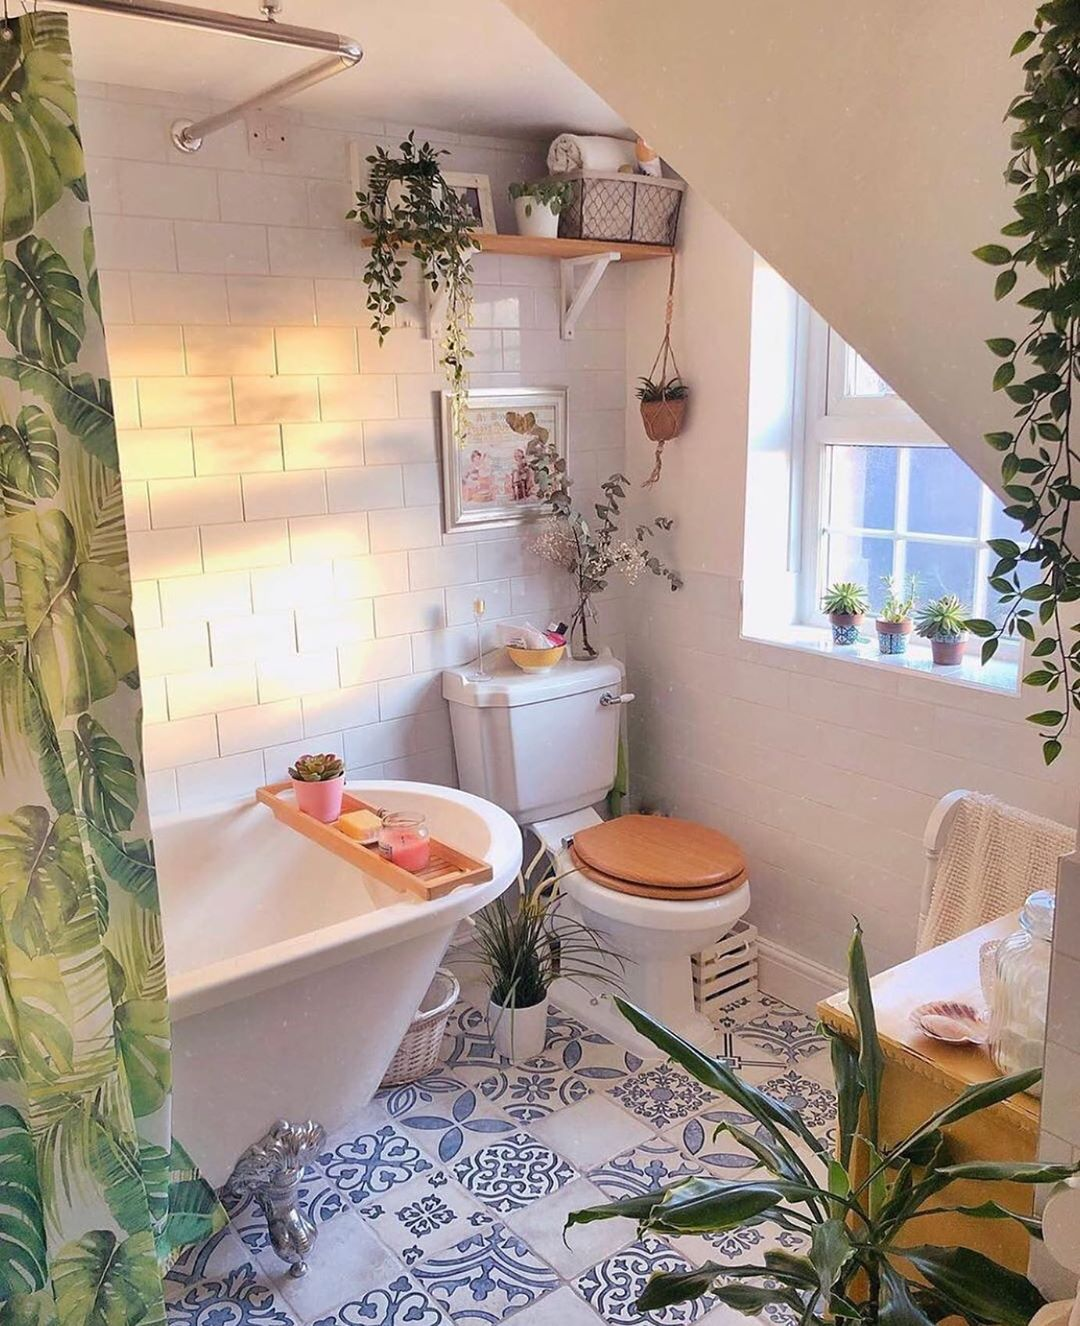 Design Your Spaces On Instagram What A Dreamy Bathroom What Do You Think This Space Follow Design Your Sp Home Beautiful Bathtubs House Inspo Home decor dream decorate small bathroom